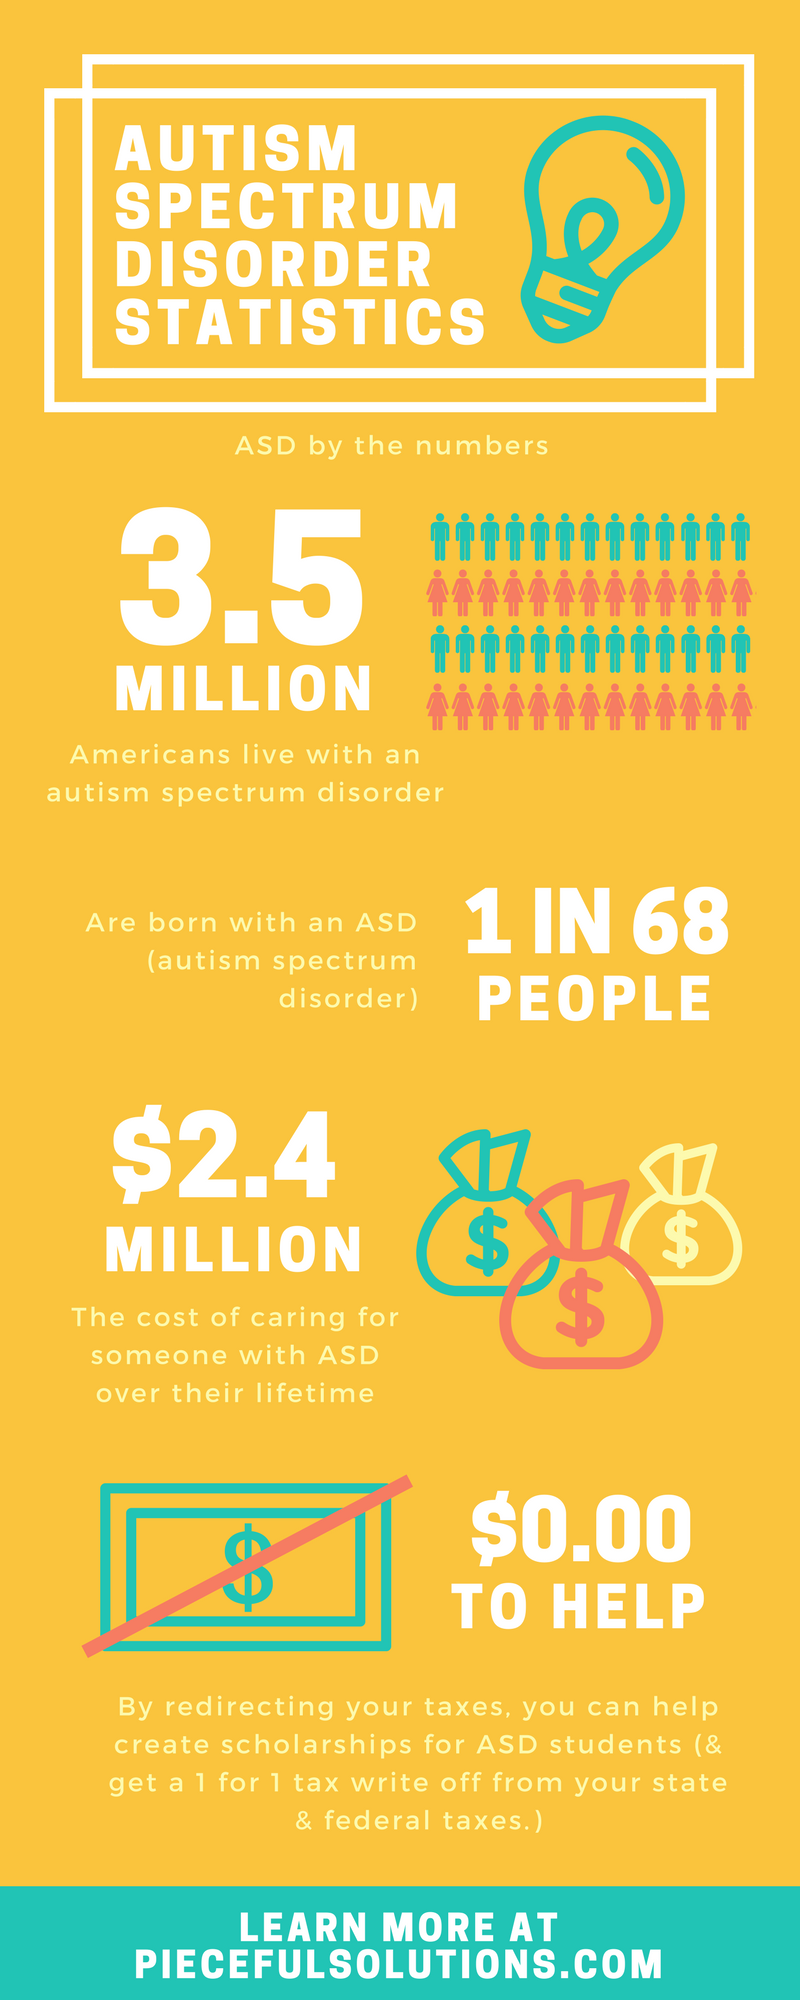 Autism-Spectrum-Disorder-Stats-Infographic.png